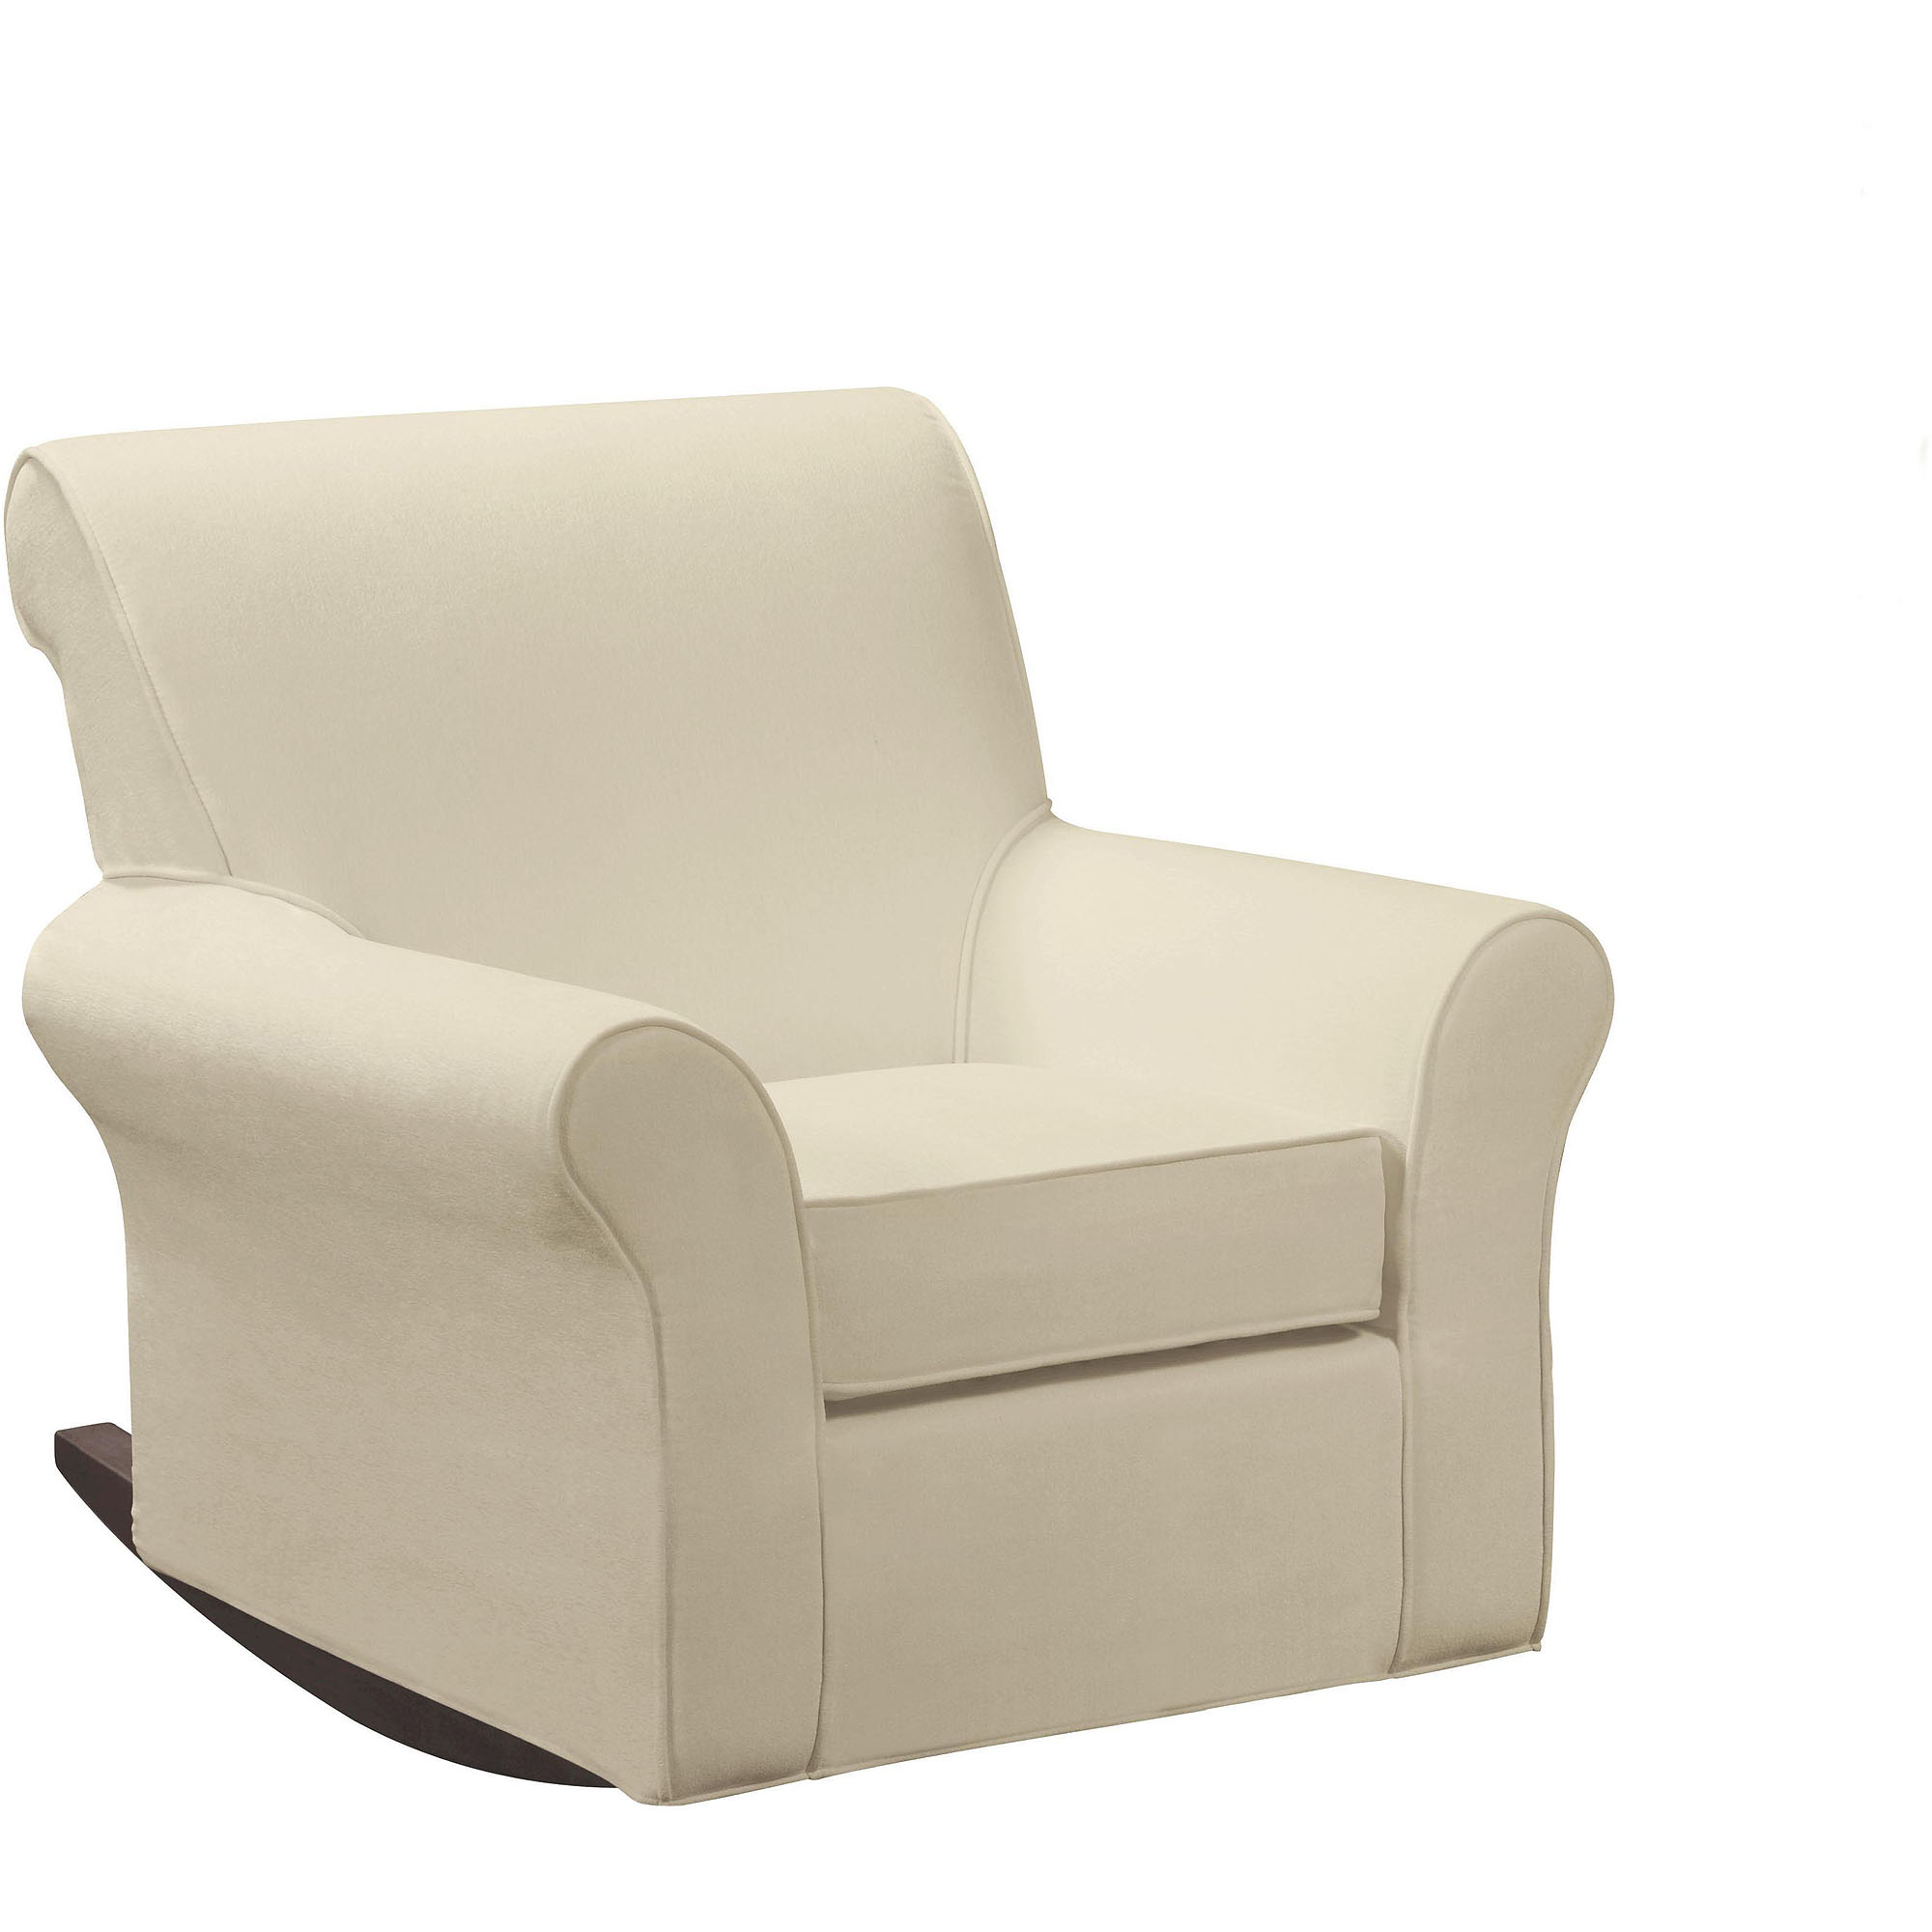 Dining Chair Slipcovers | Oversized Chair Slipcover | Walmart Chair Covers